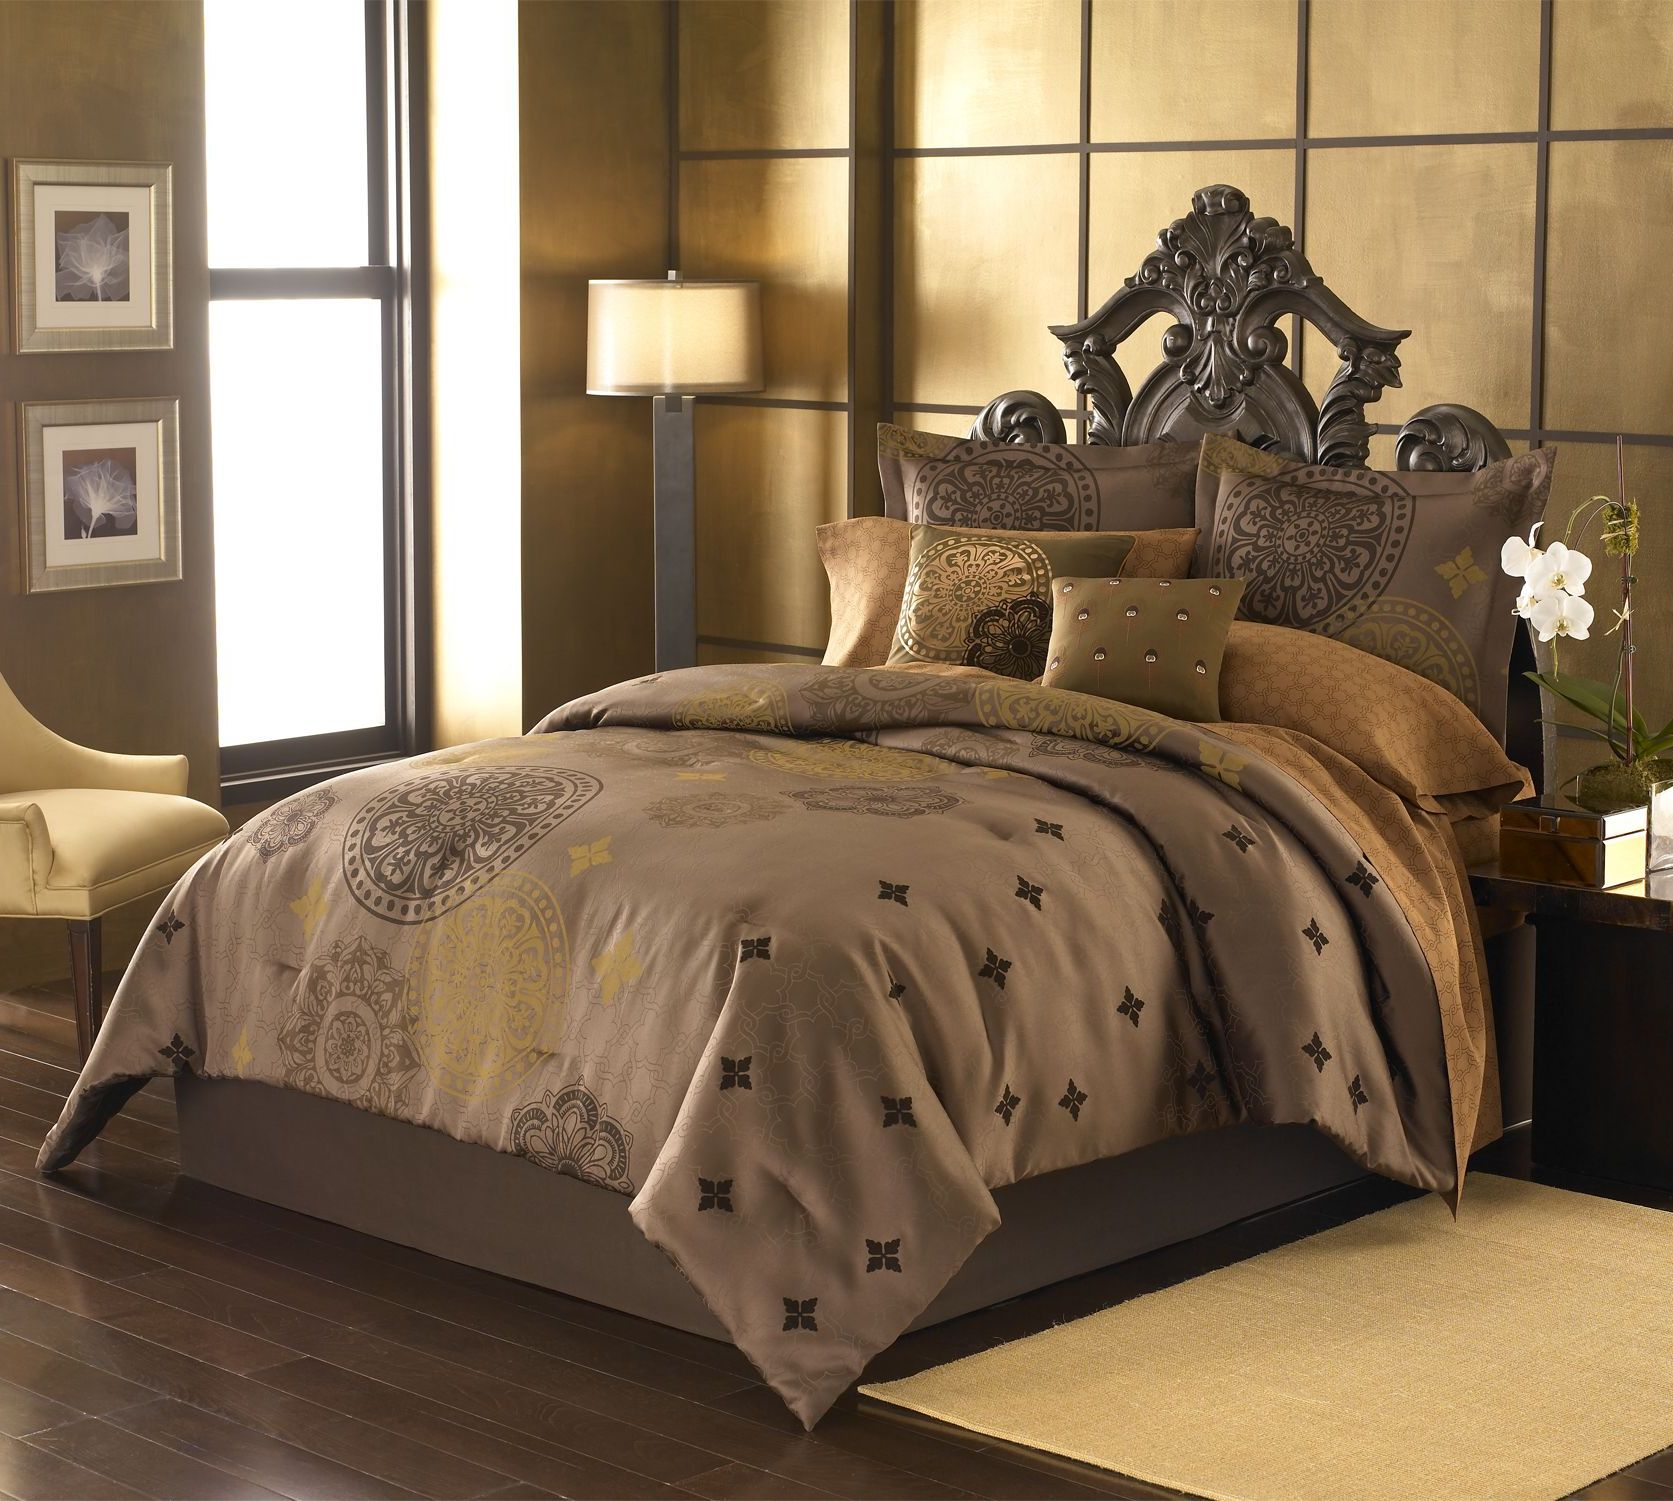 Marakesh Medallion Comforter Set